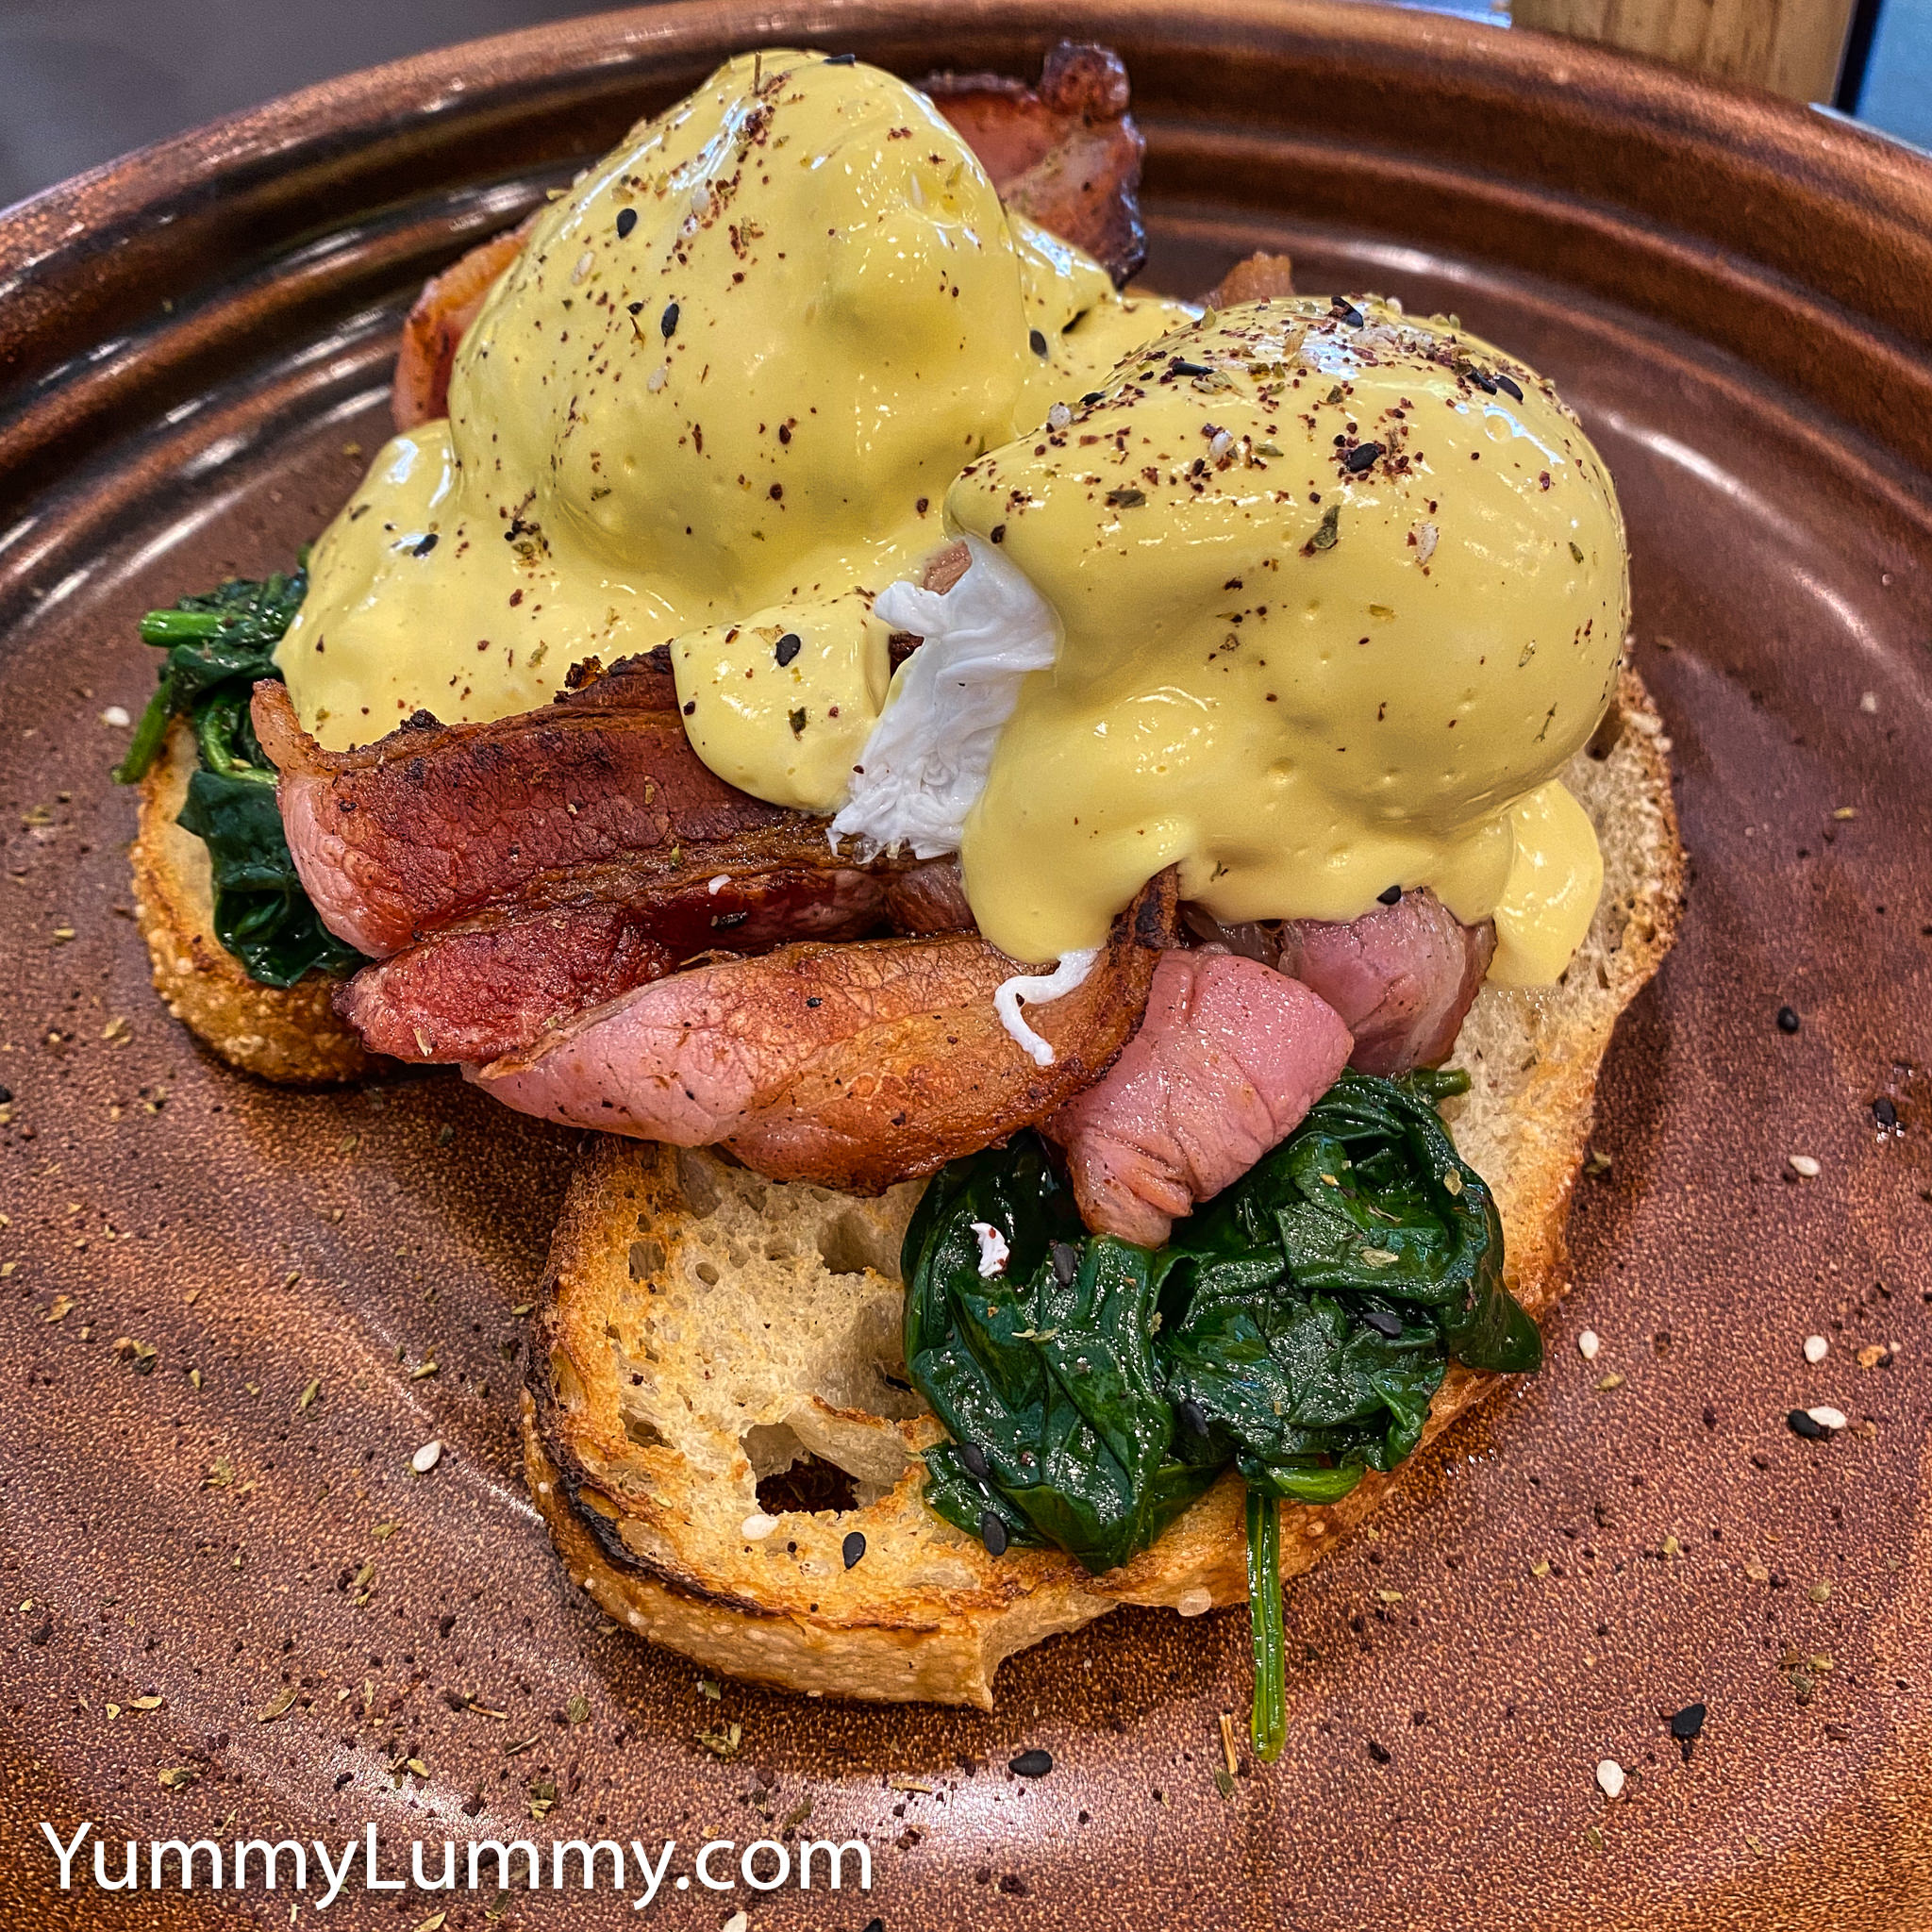 Photograph of Eggs Benedict Bacon from Ricardo's Cafe. Gary Lum.